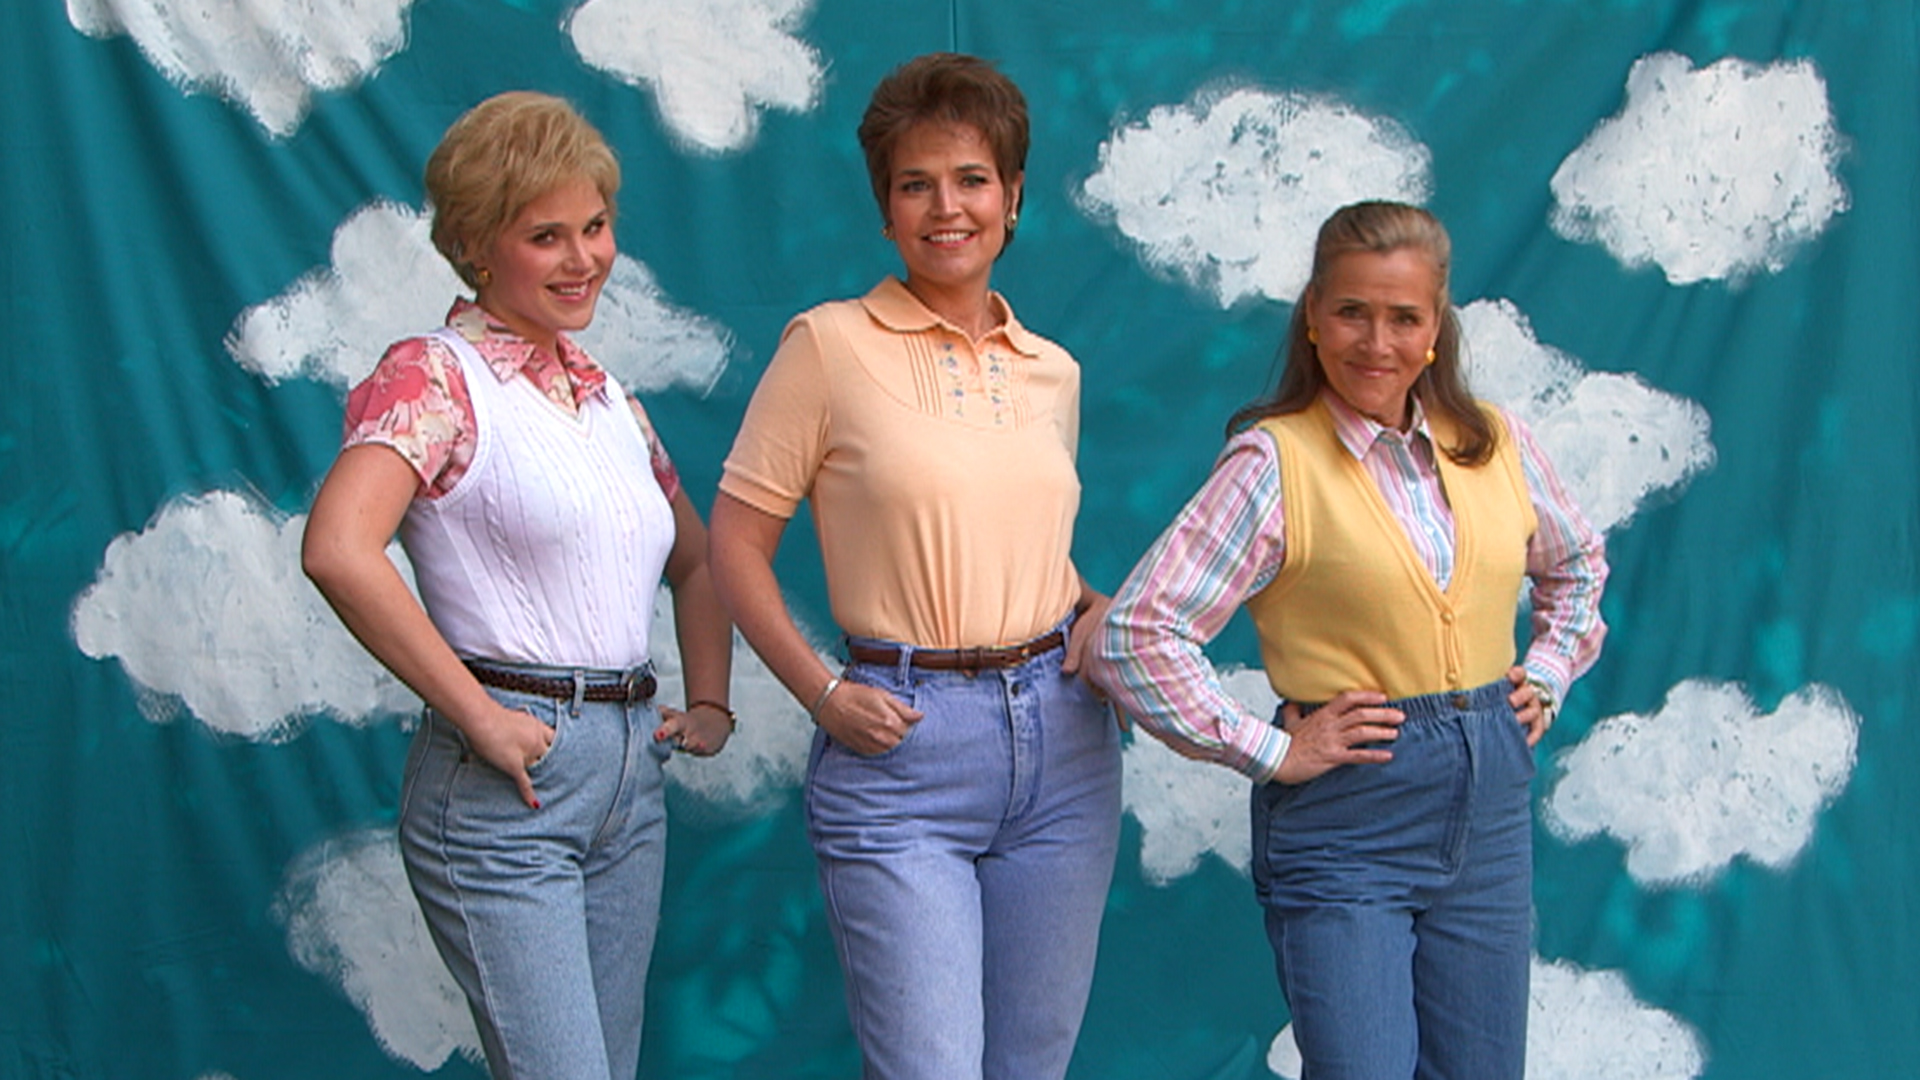 today ladies rock mom jeans in snl spirit   today